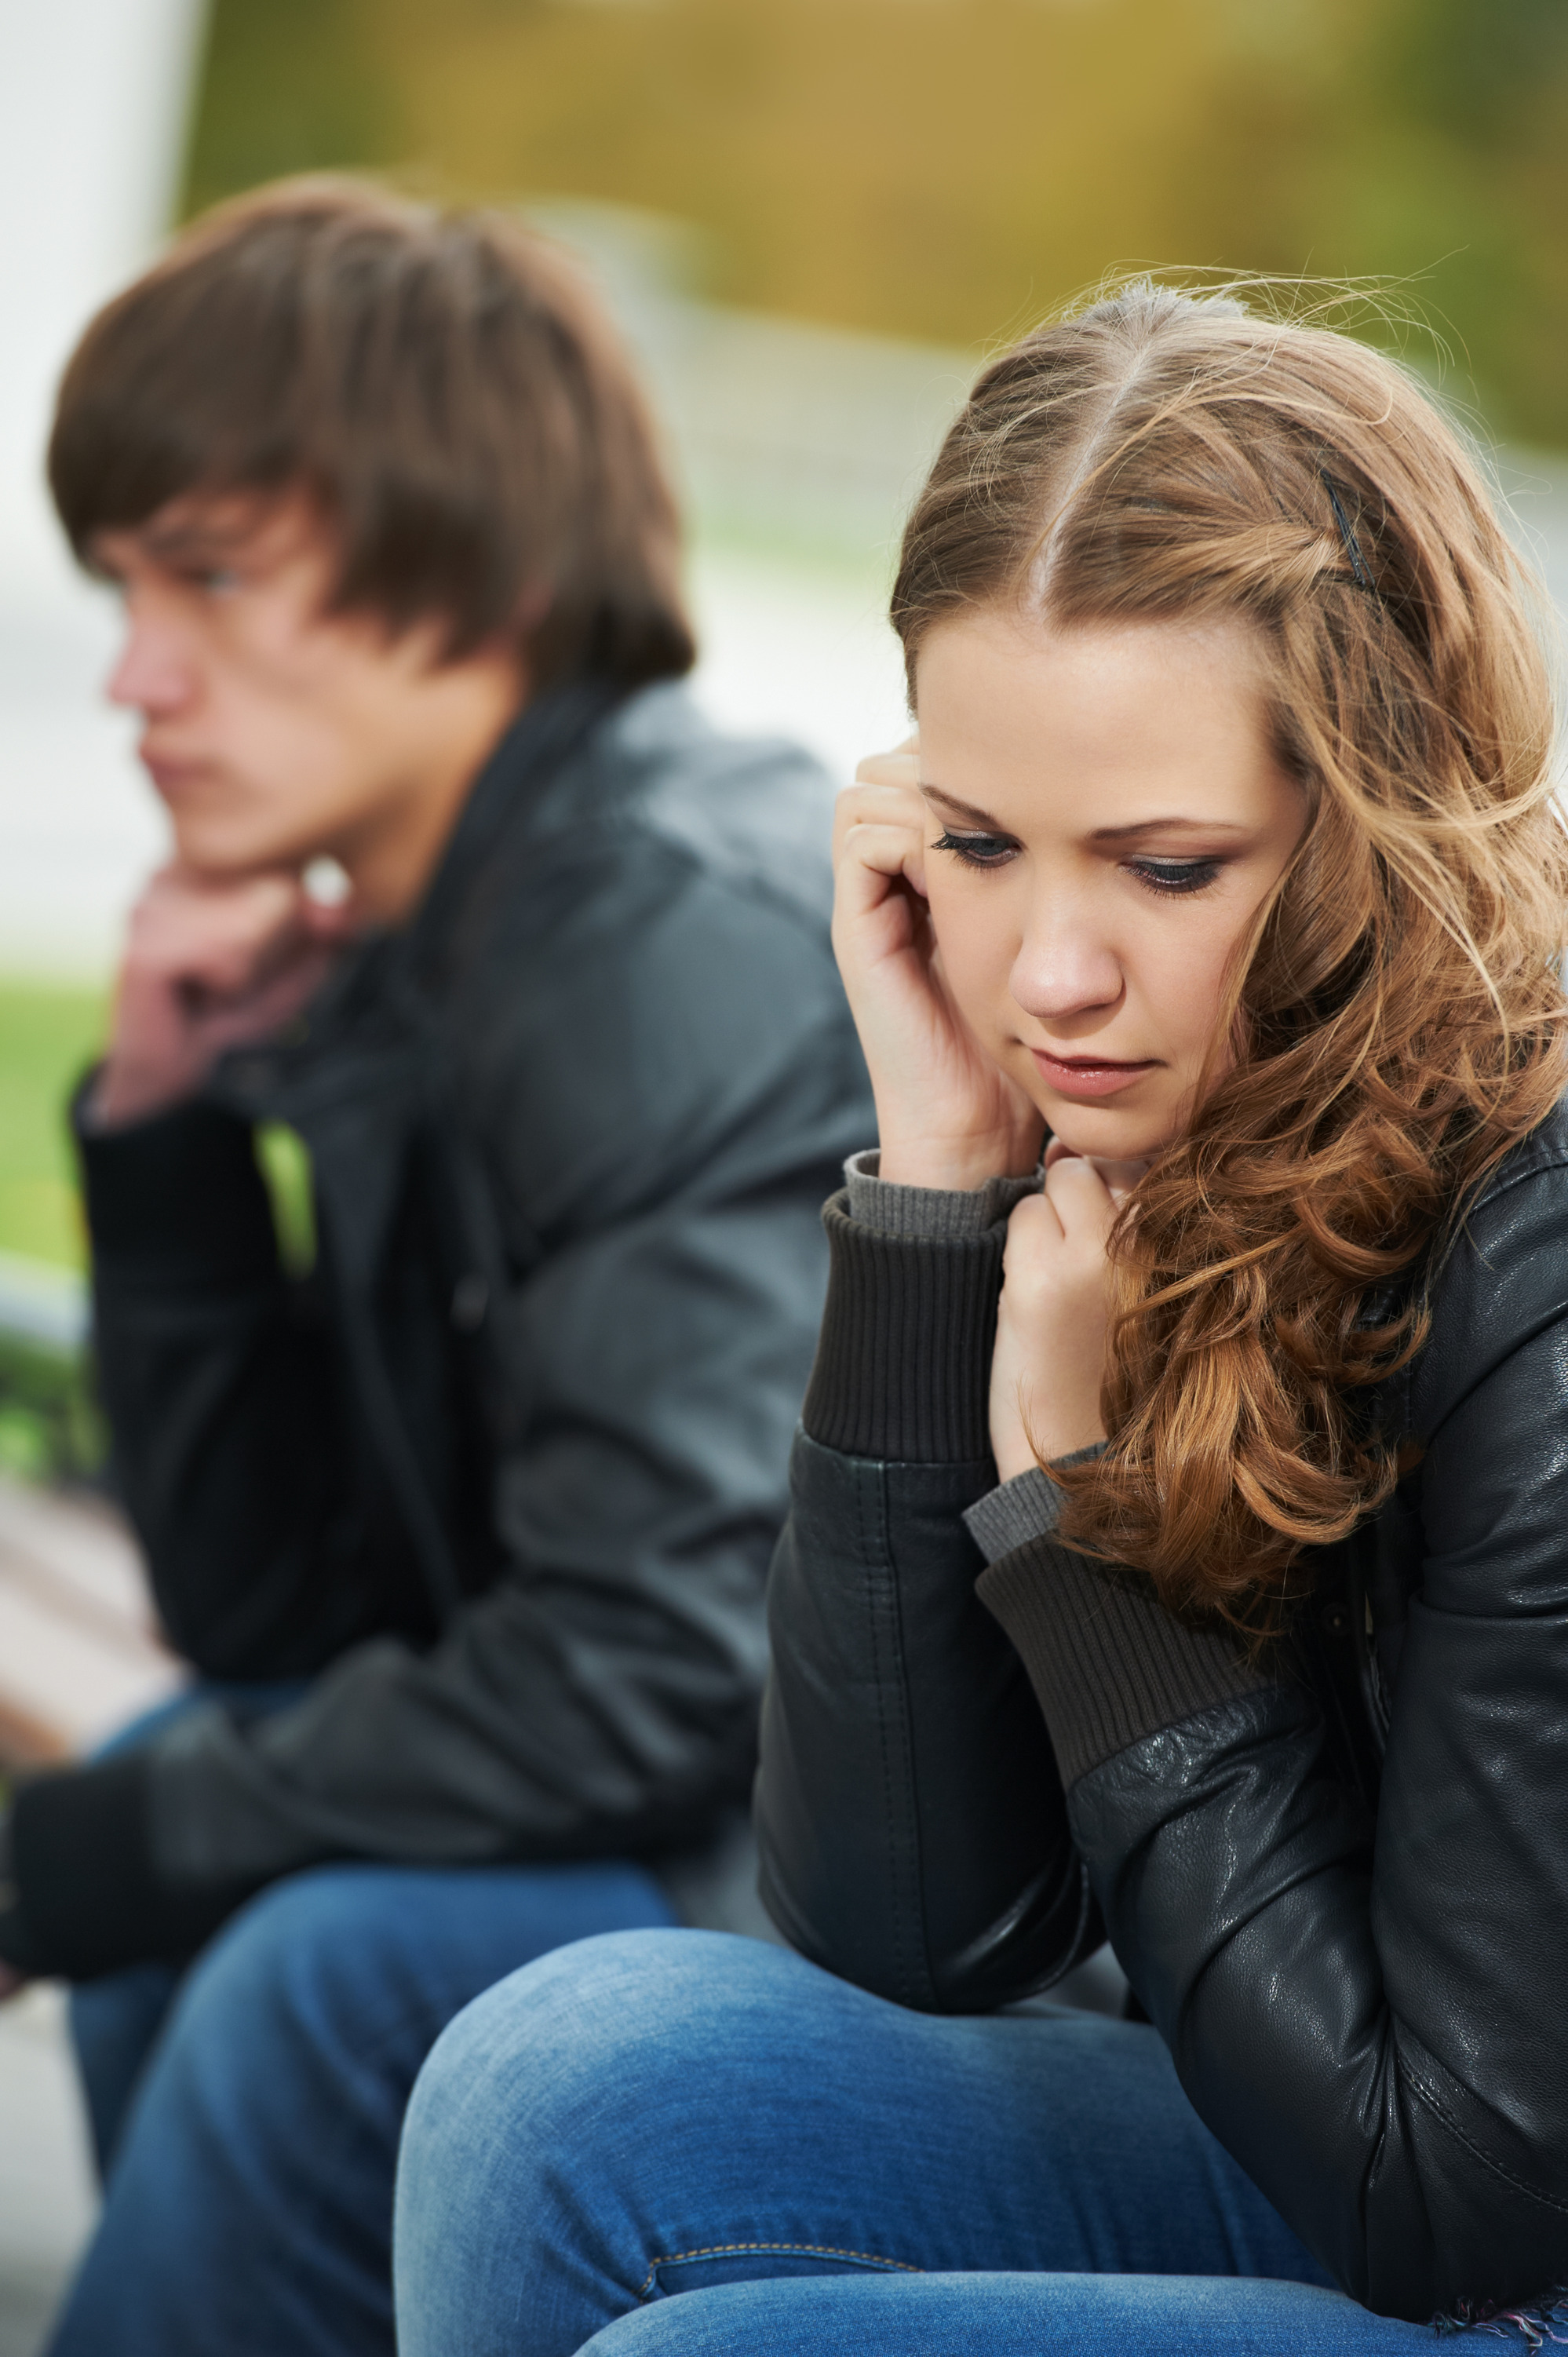 unhealthy relationships abuse - SAVIS Youth